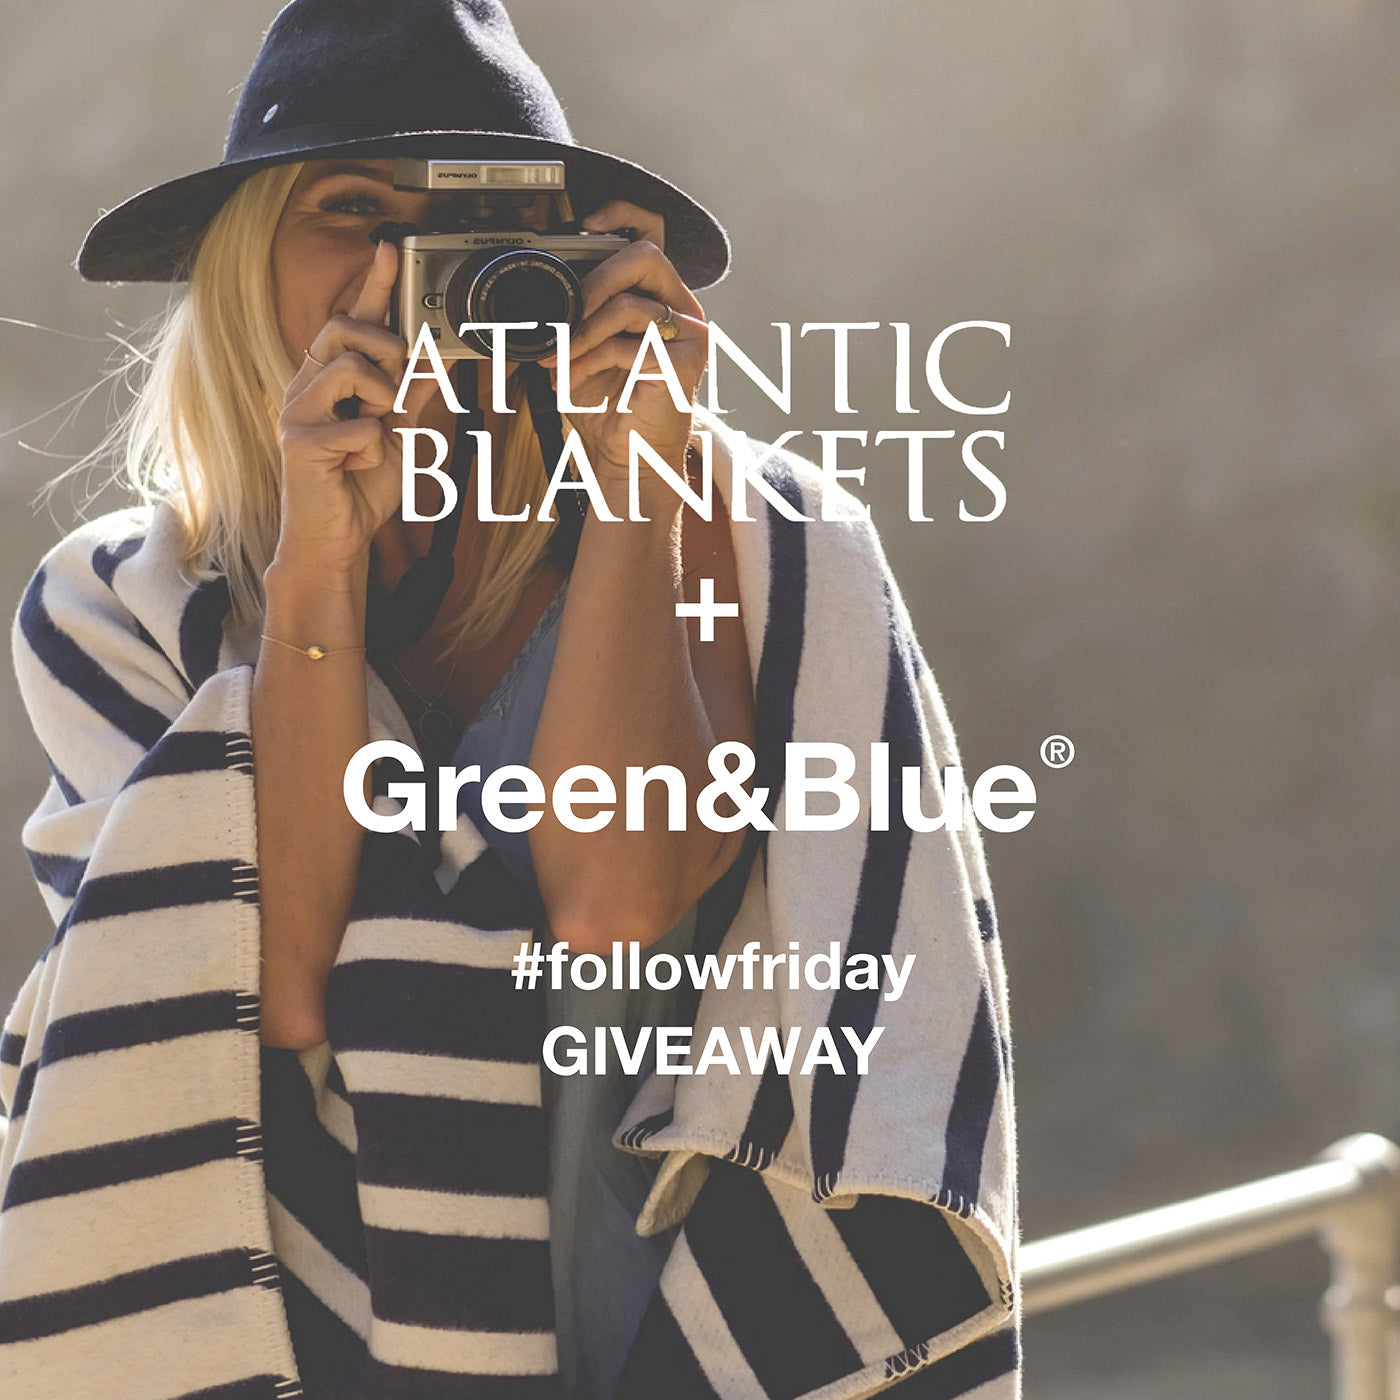 Green&Blue and atlantic blankets competition image